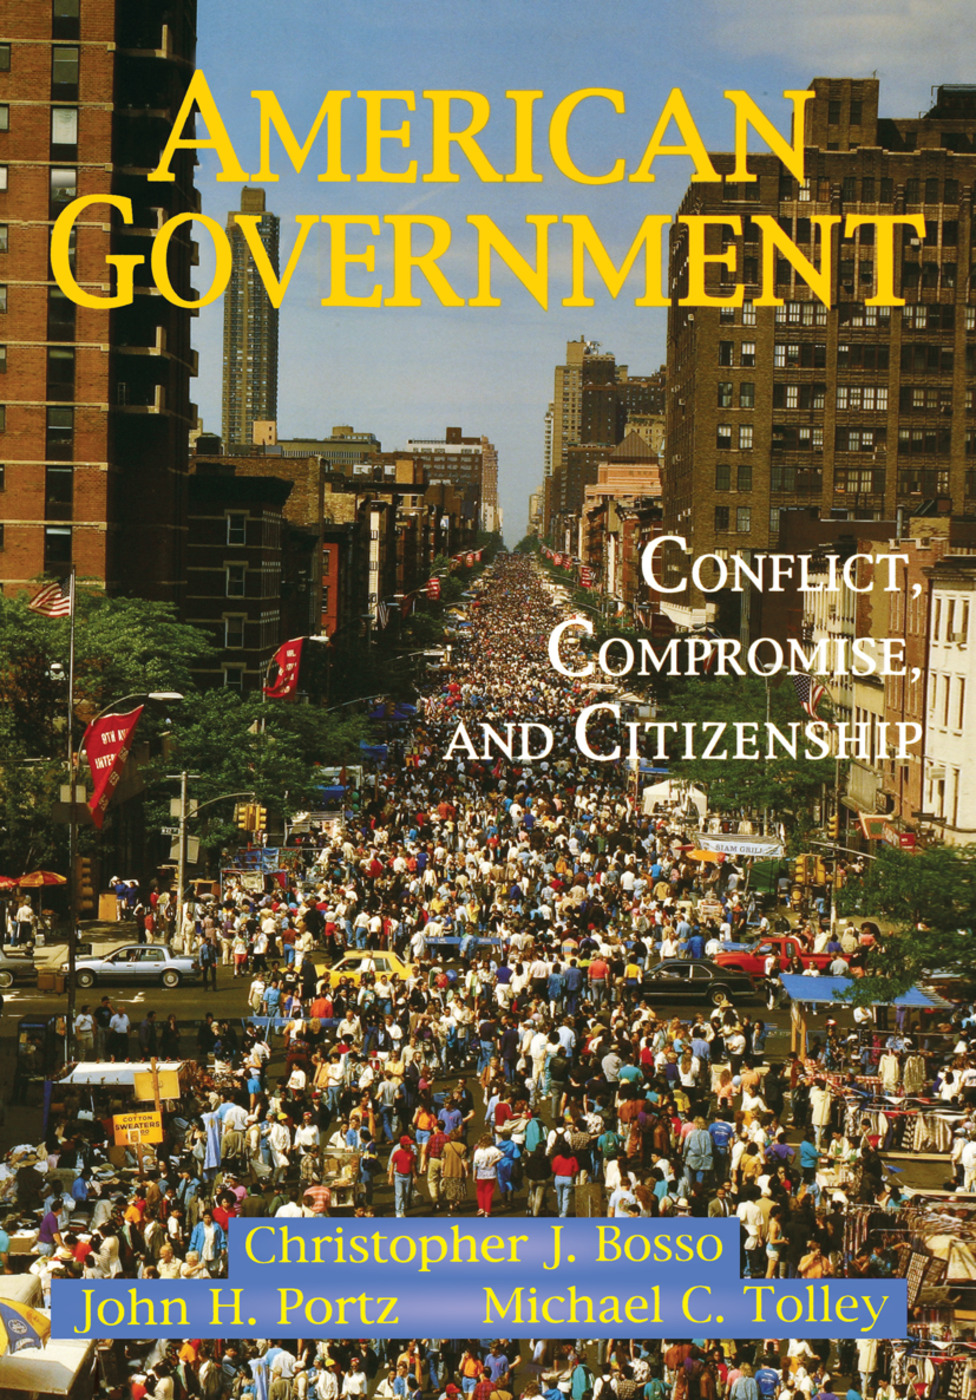 American Government: Conflict, Compromise, And Citizenship book cover